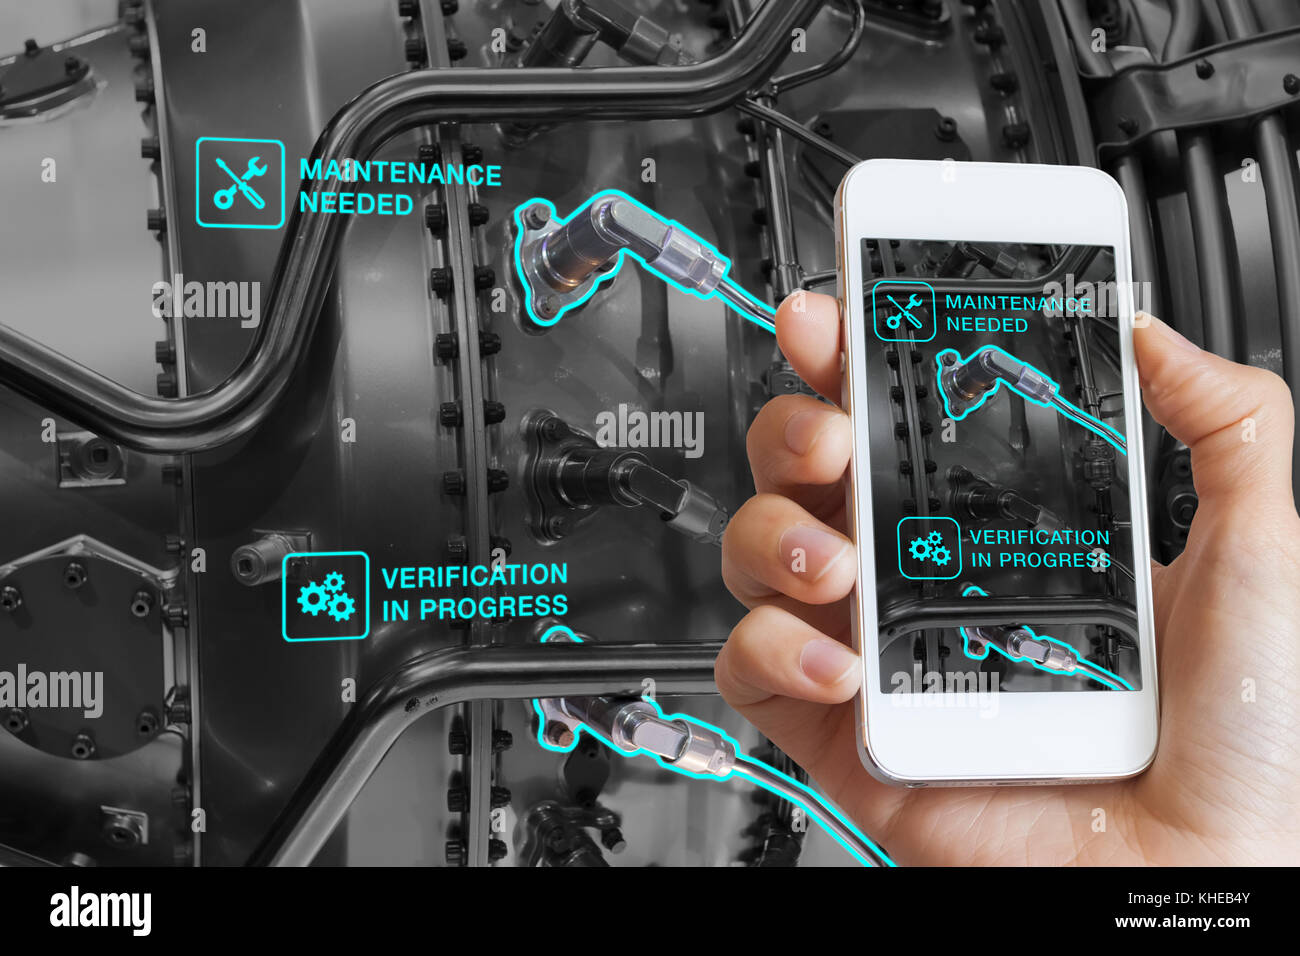 Augmented Reality Technology Maintenance And Service Of